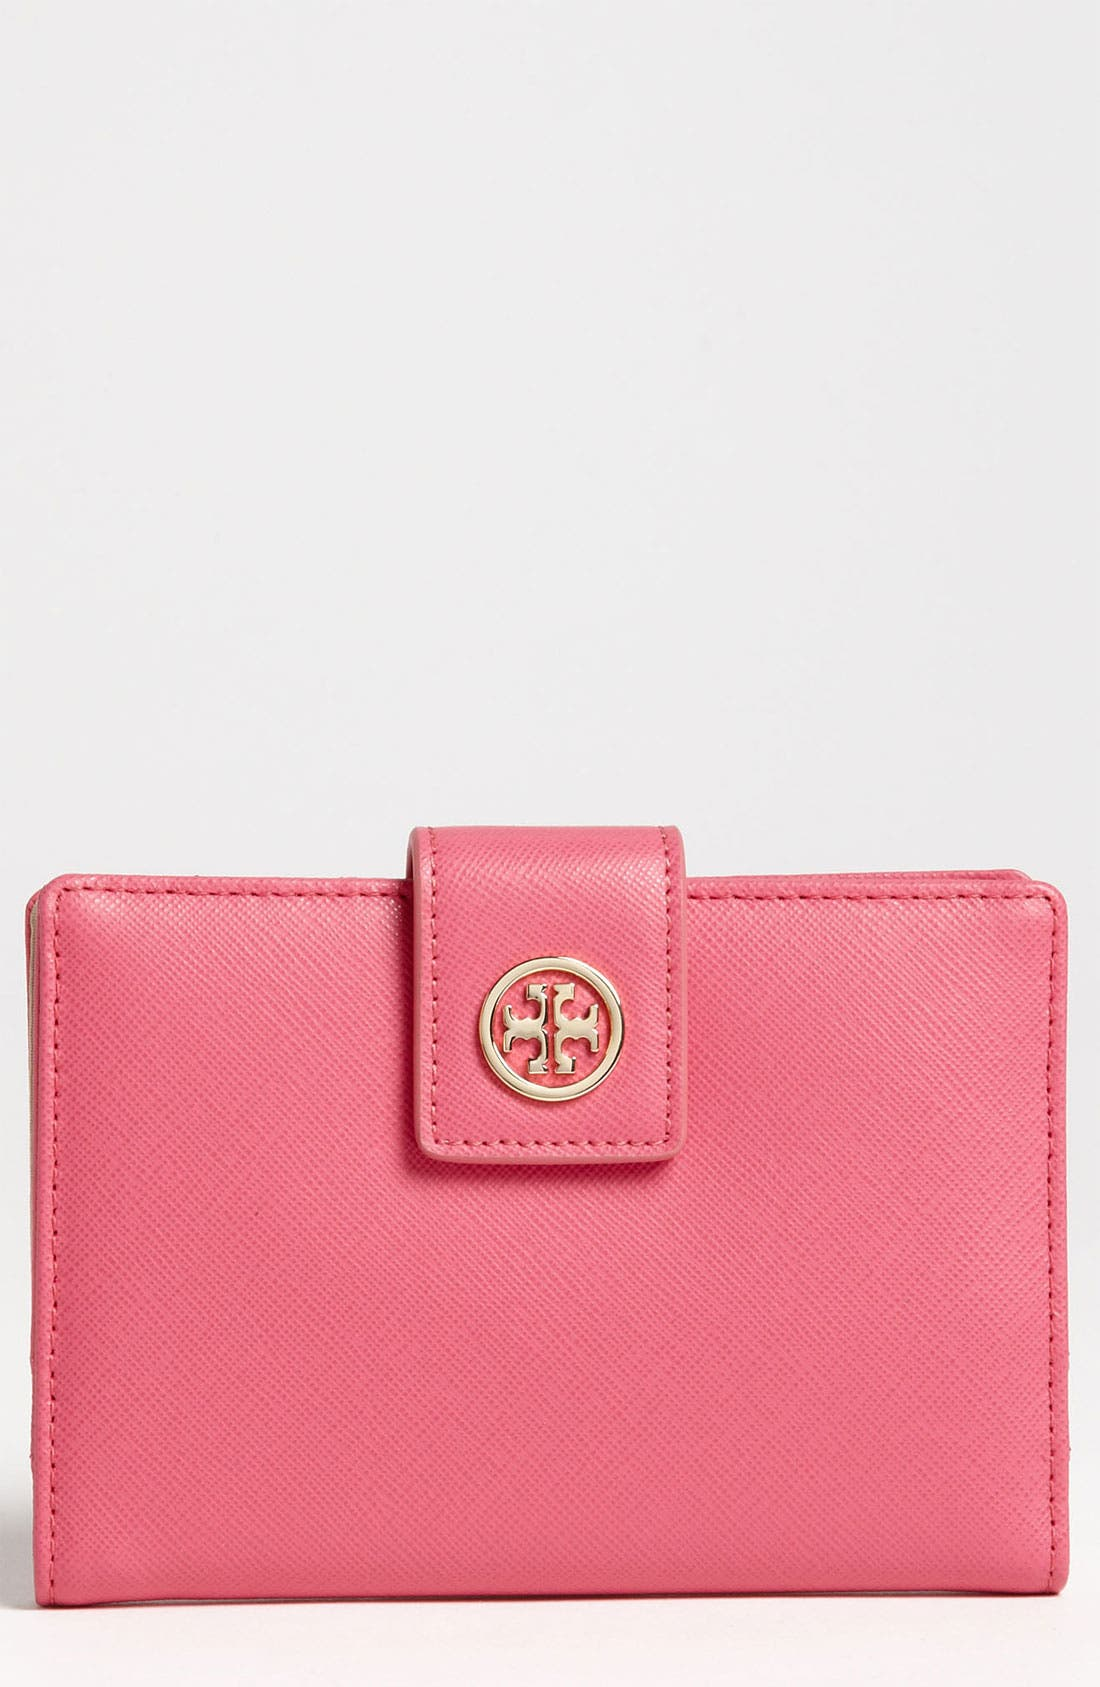 Alternate Image 1 Selected - Tory Burch 'Robinson' Passport Holder